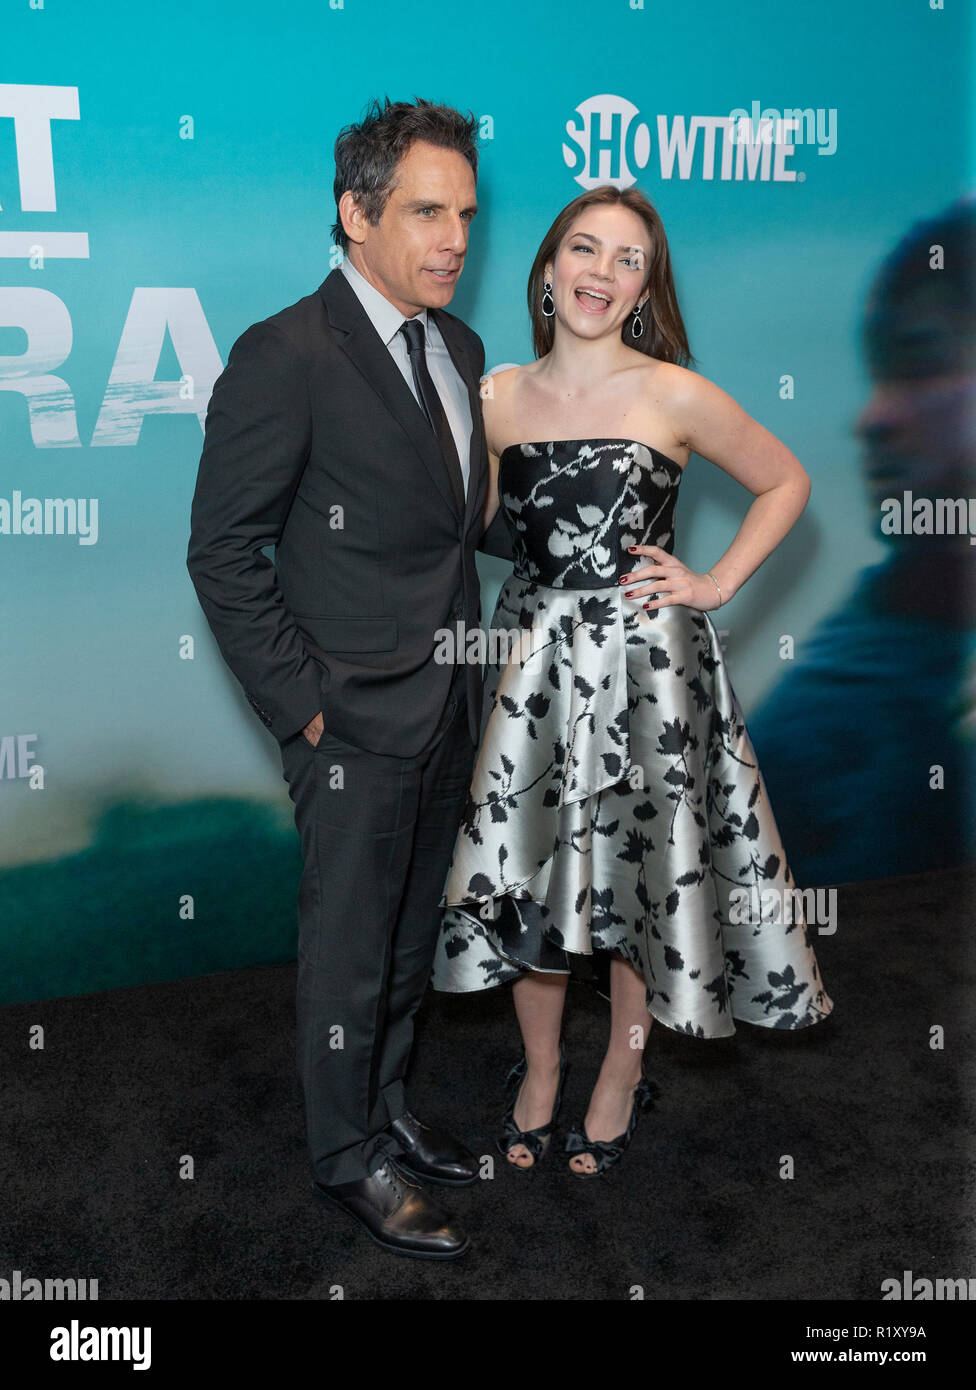 New York, Vereinigte Staaten. 14 Nov, 2018. Ben Stiller und Ella Olivia Stiller besuchen die Showtime Reihe Premiere von Escape an Dannemora in der Alice Tully Hall im Lincoln Center Credit: Lev Radin/Pacific Press/Alamy leben Nachrichten Stockbild